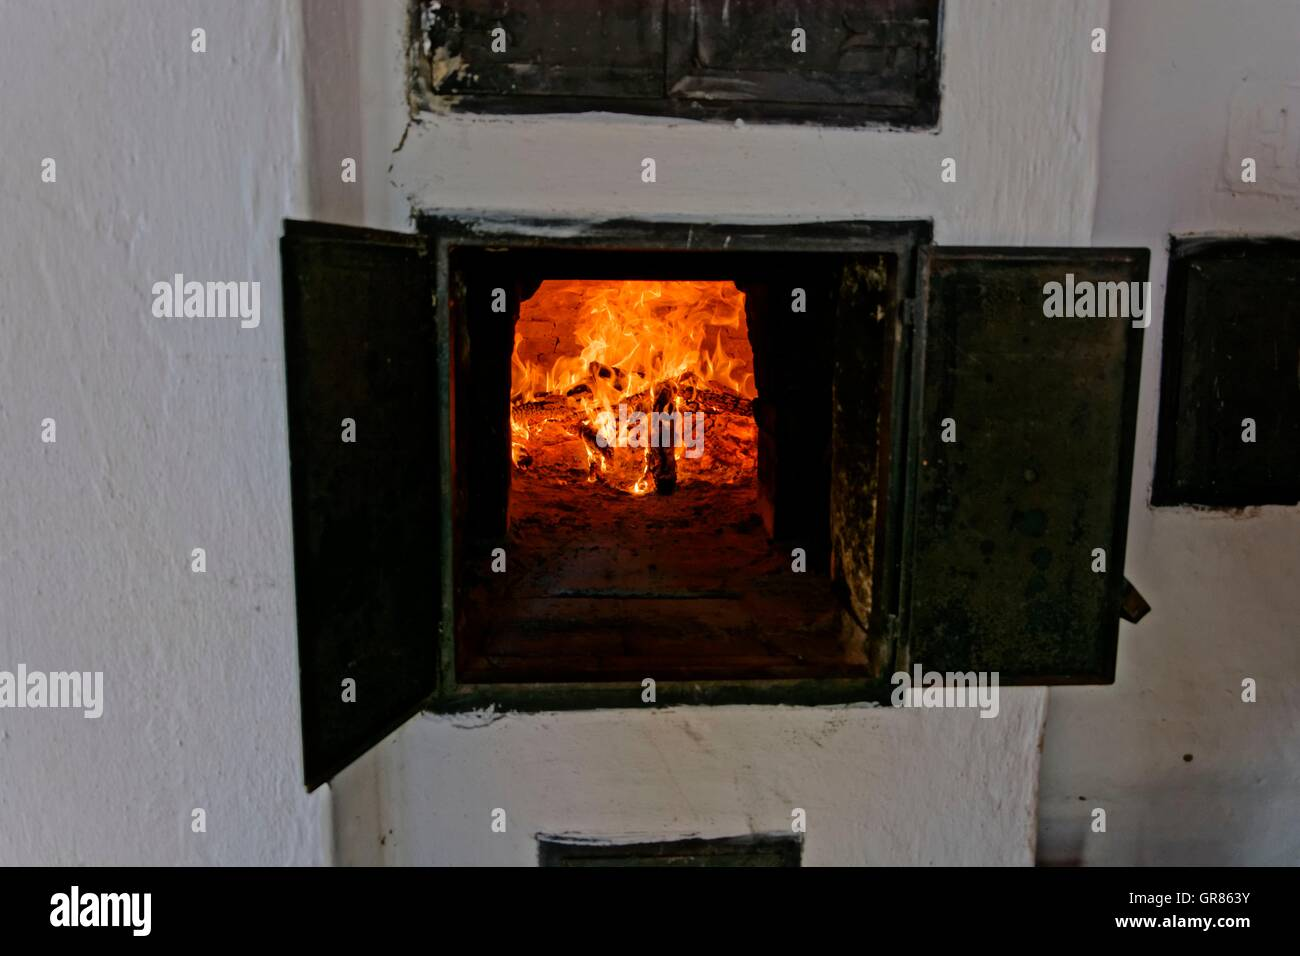 Fire In The Stone Oven With Open Iron Doors Stock Photo